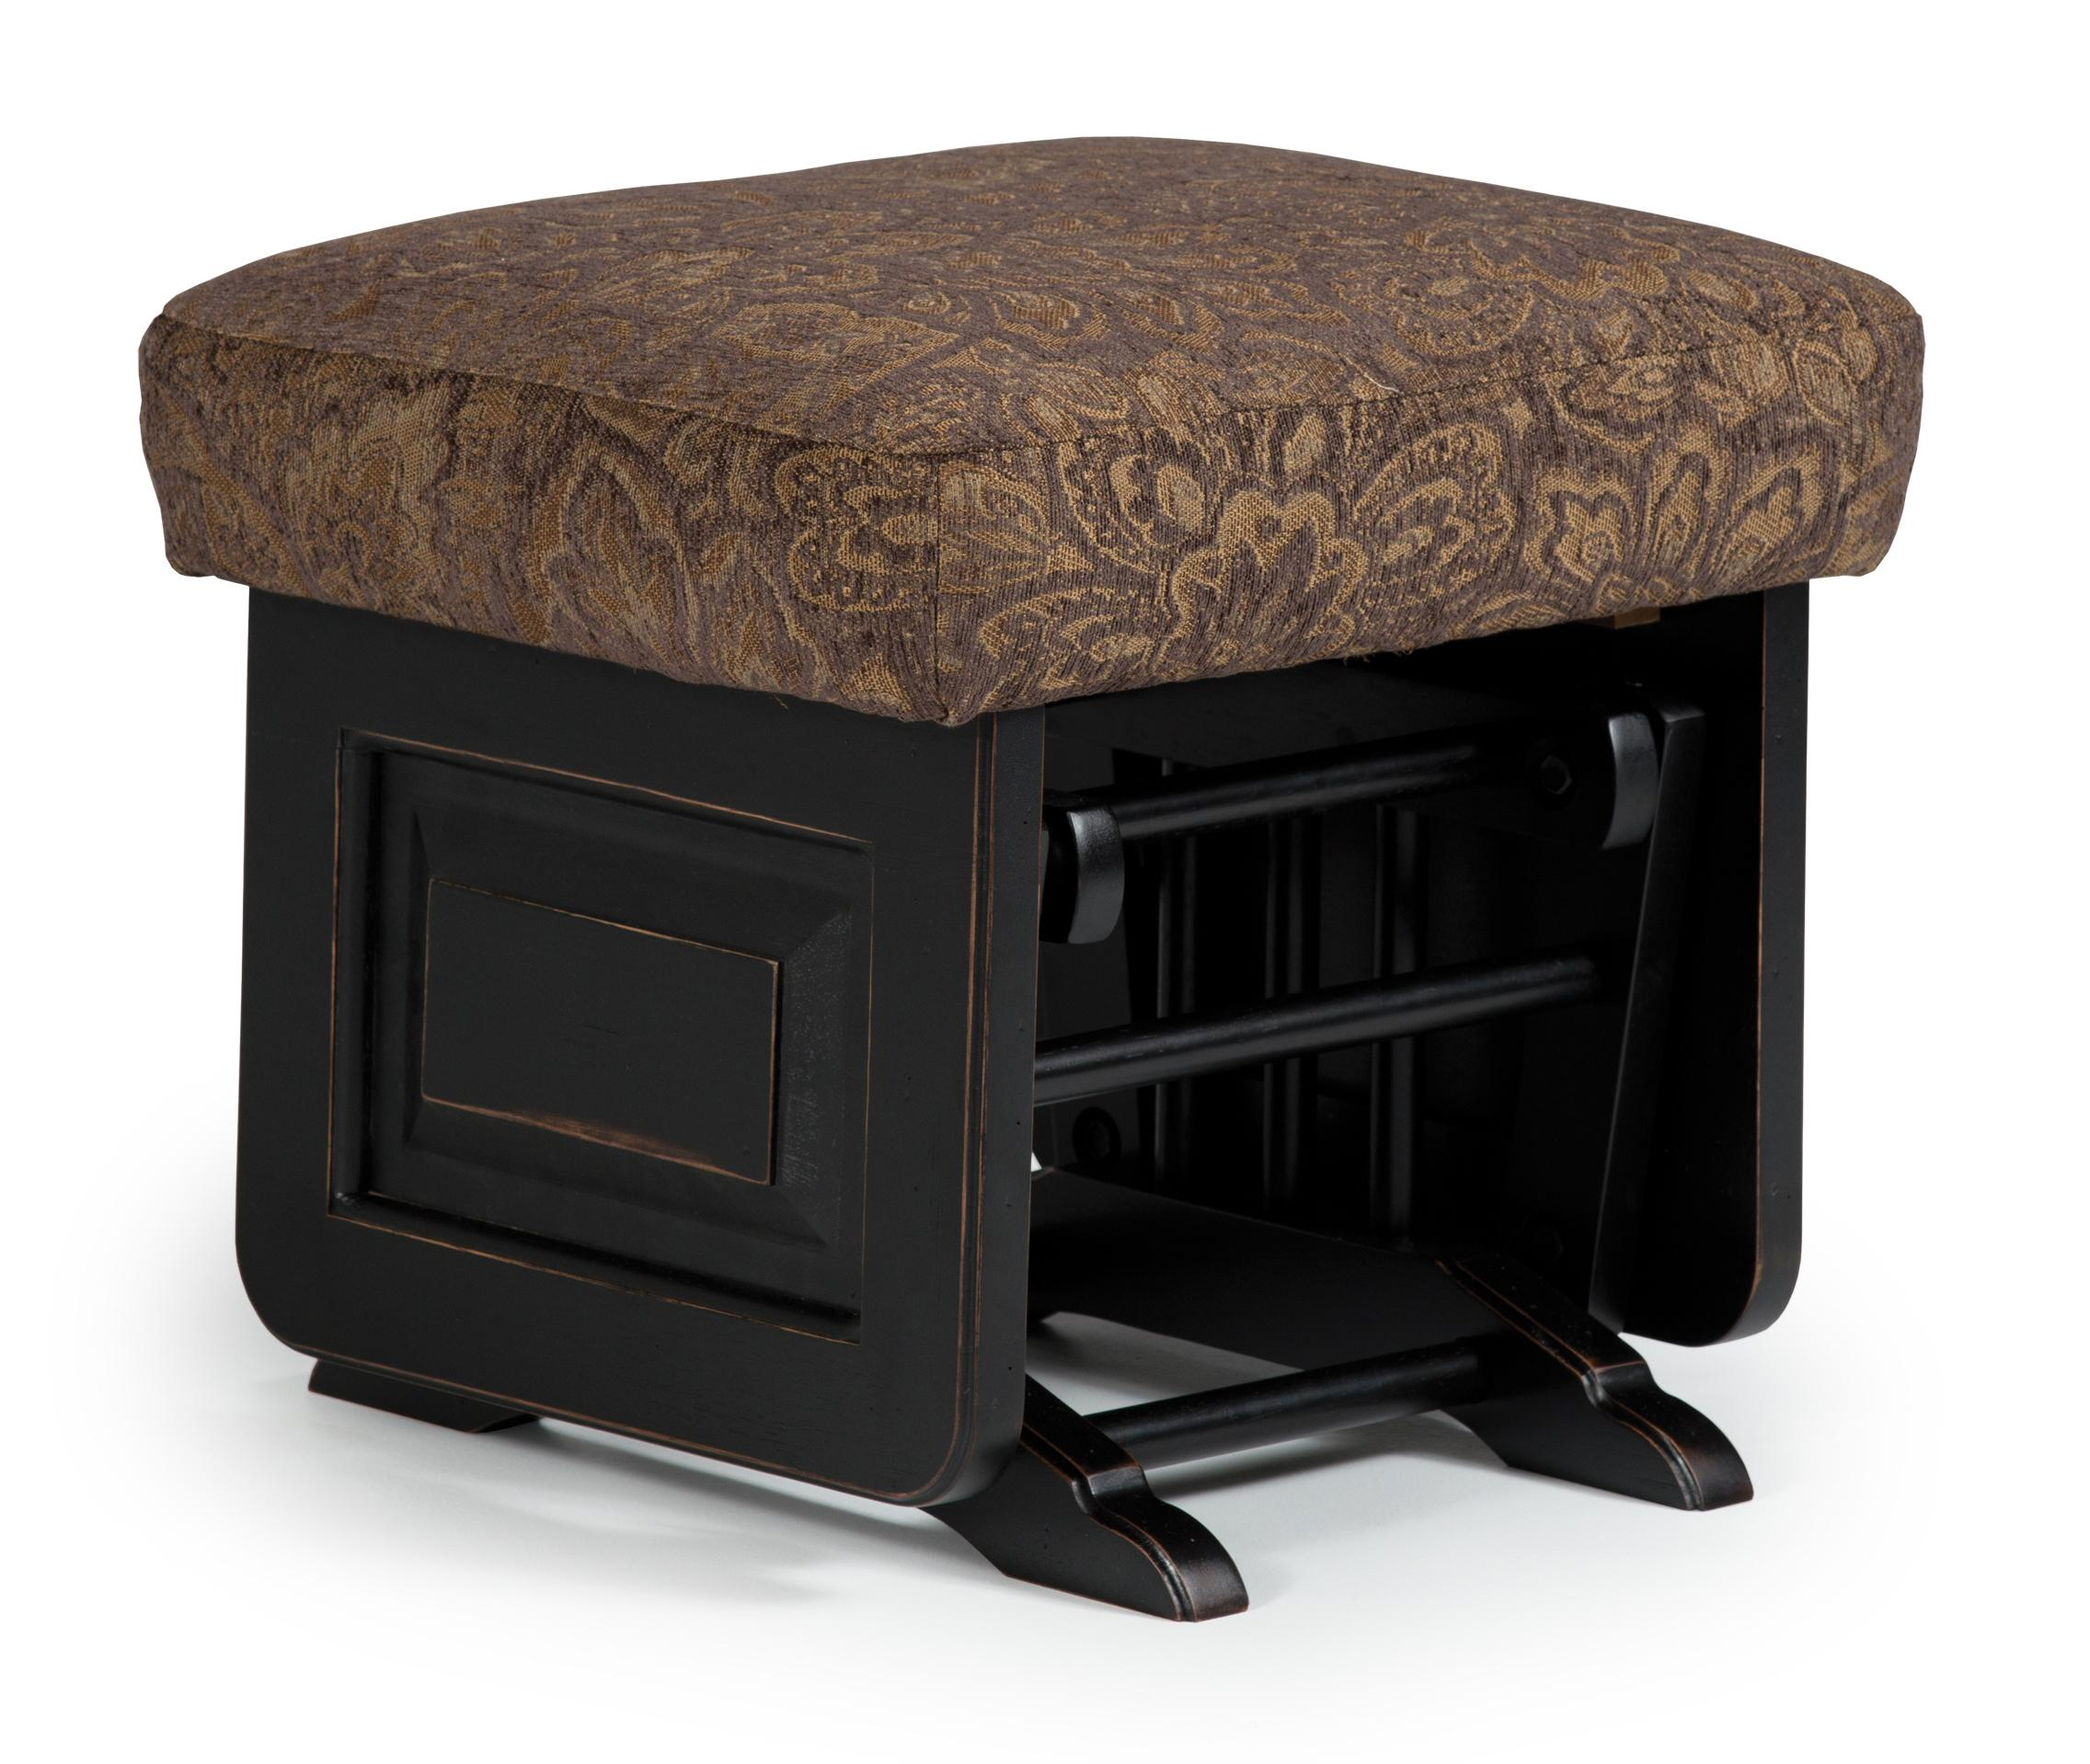 Best Home Furnishings Glider Rockers Ottoman - Item Number: C0089